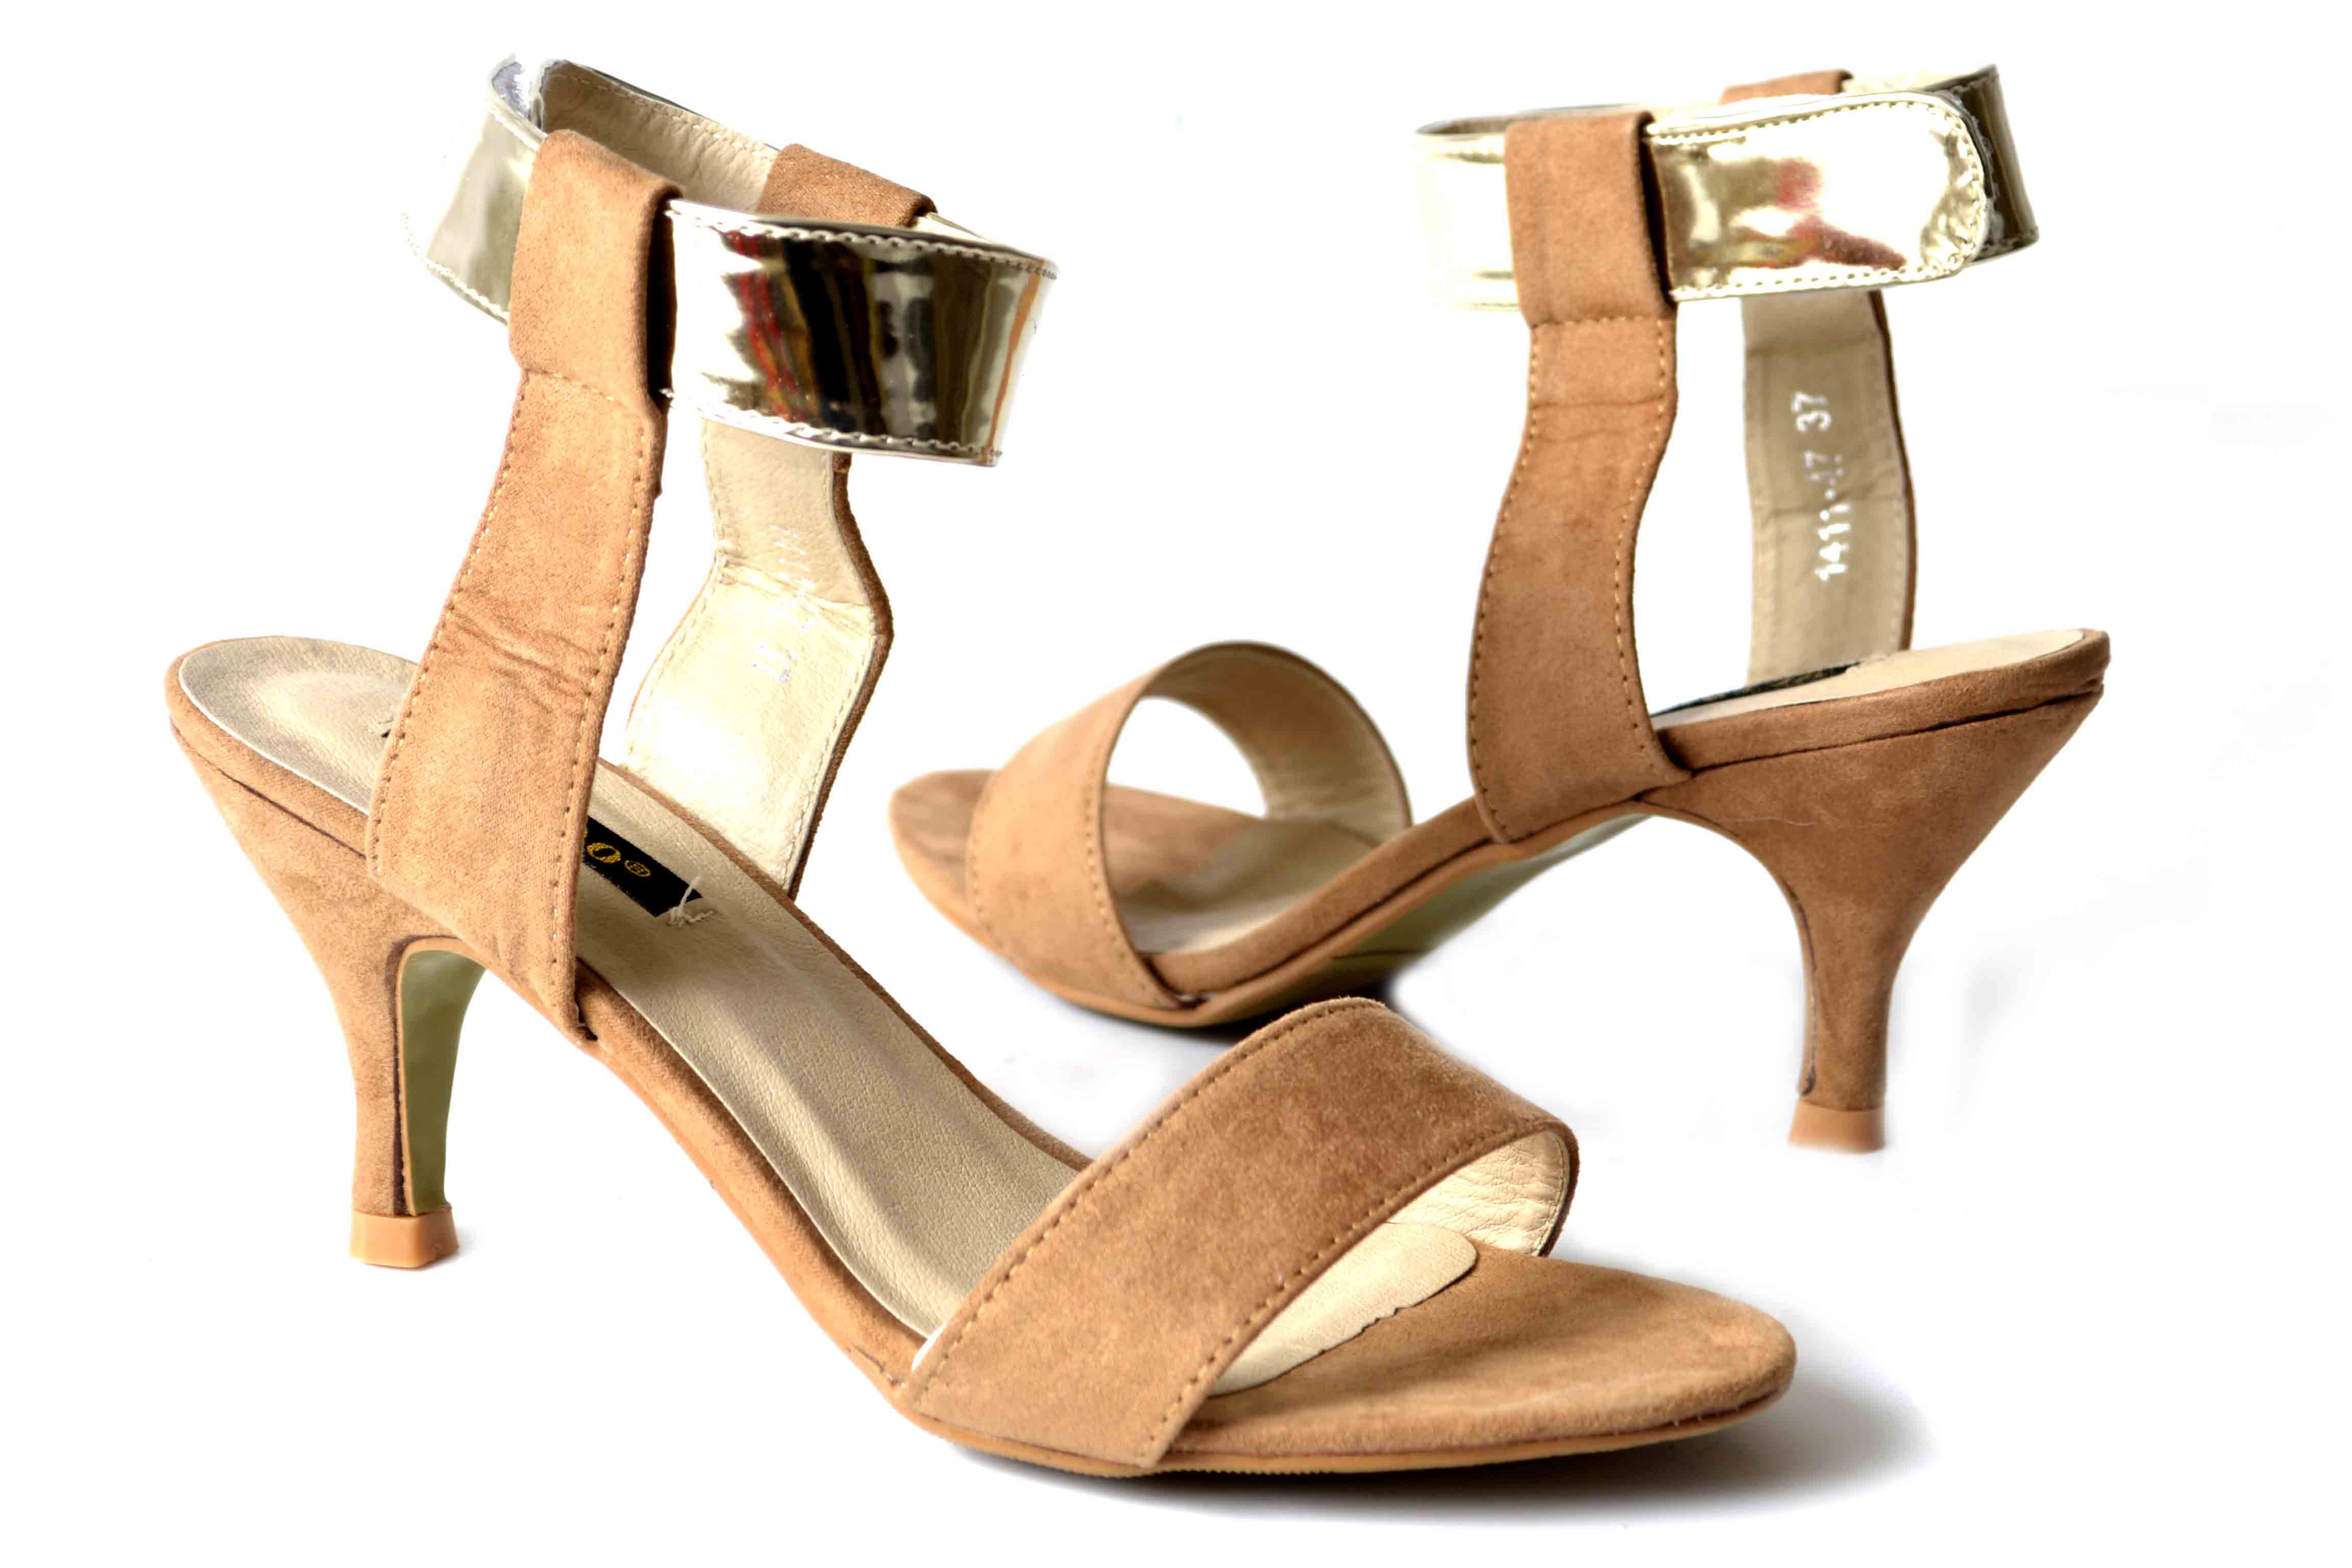 Metro-Shoes-Spring-Summer-Collection-2015-2016 (1)